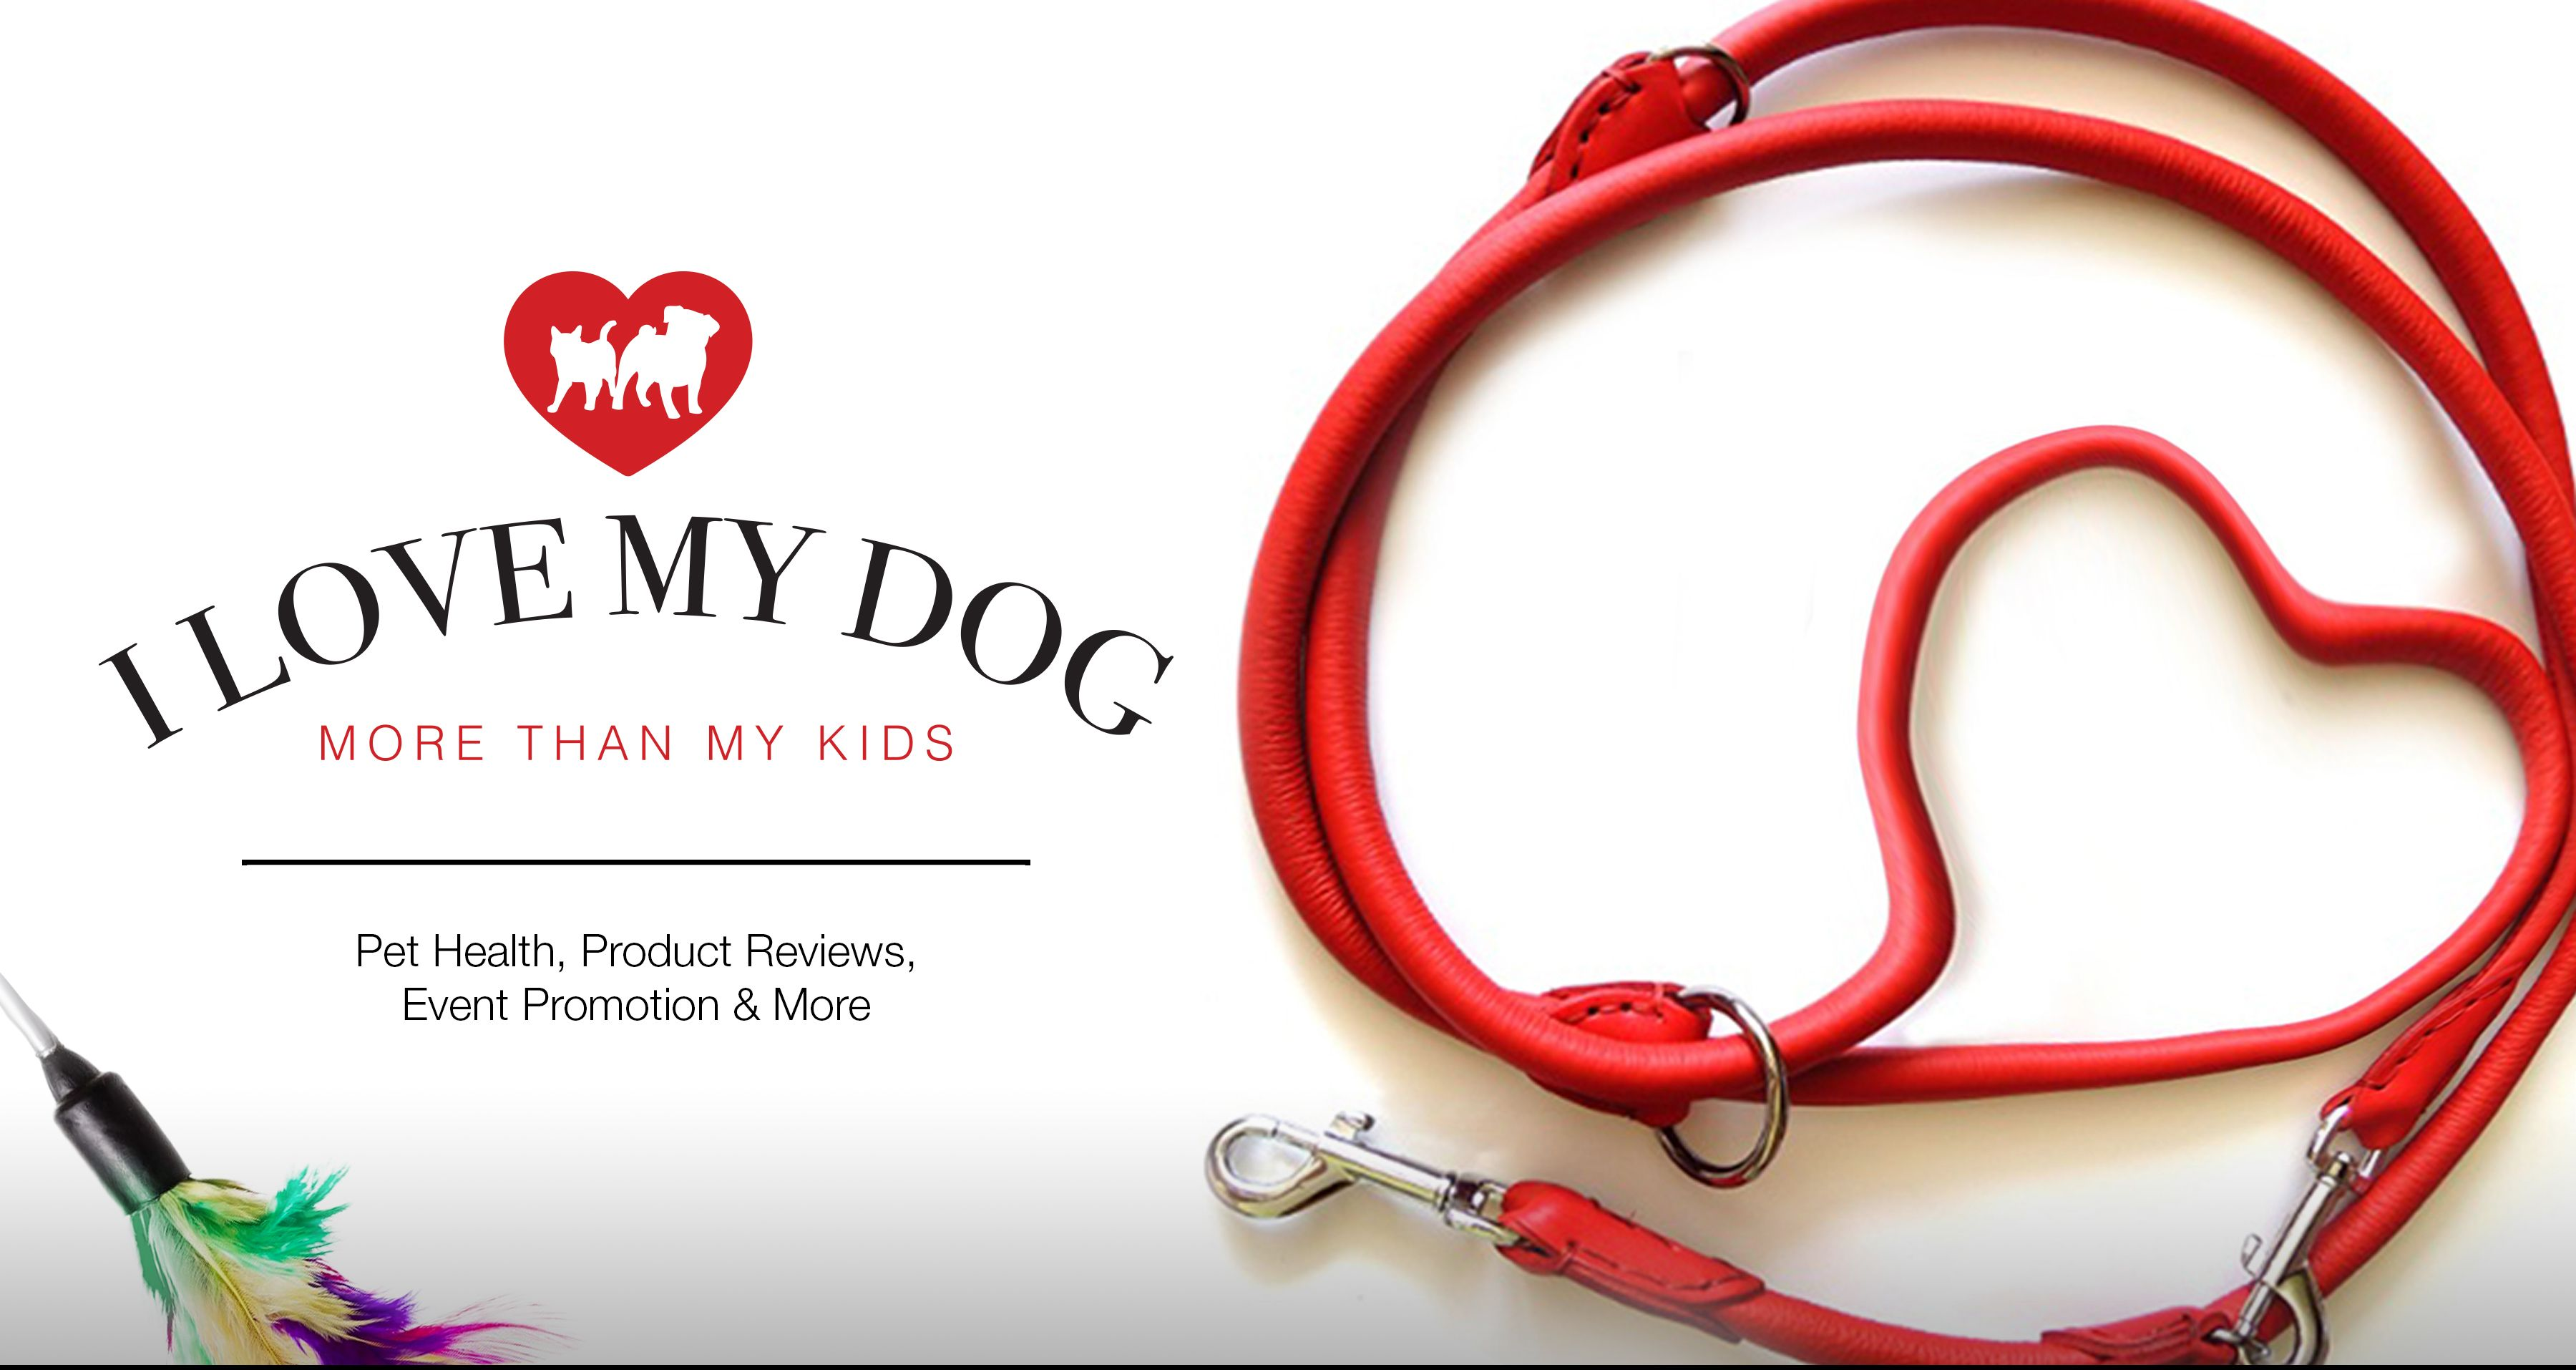 ILoveMyDogMoreThanMyKids.com We're about Pet Health, Product Reviews, and Pet Event Promotion. Connect with us to see what we can do to help promote your Pet Business, Pet Products and Events